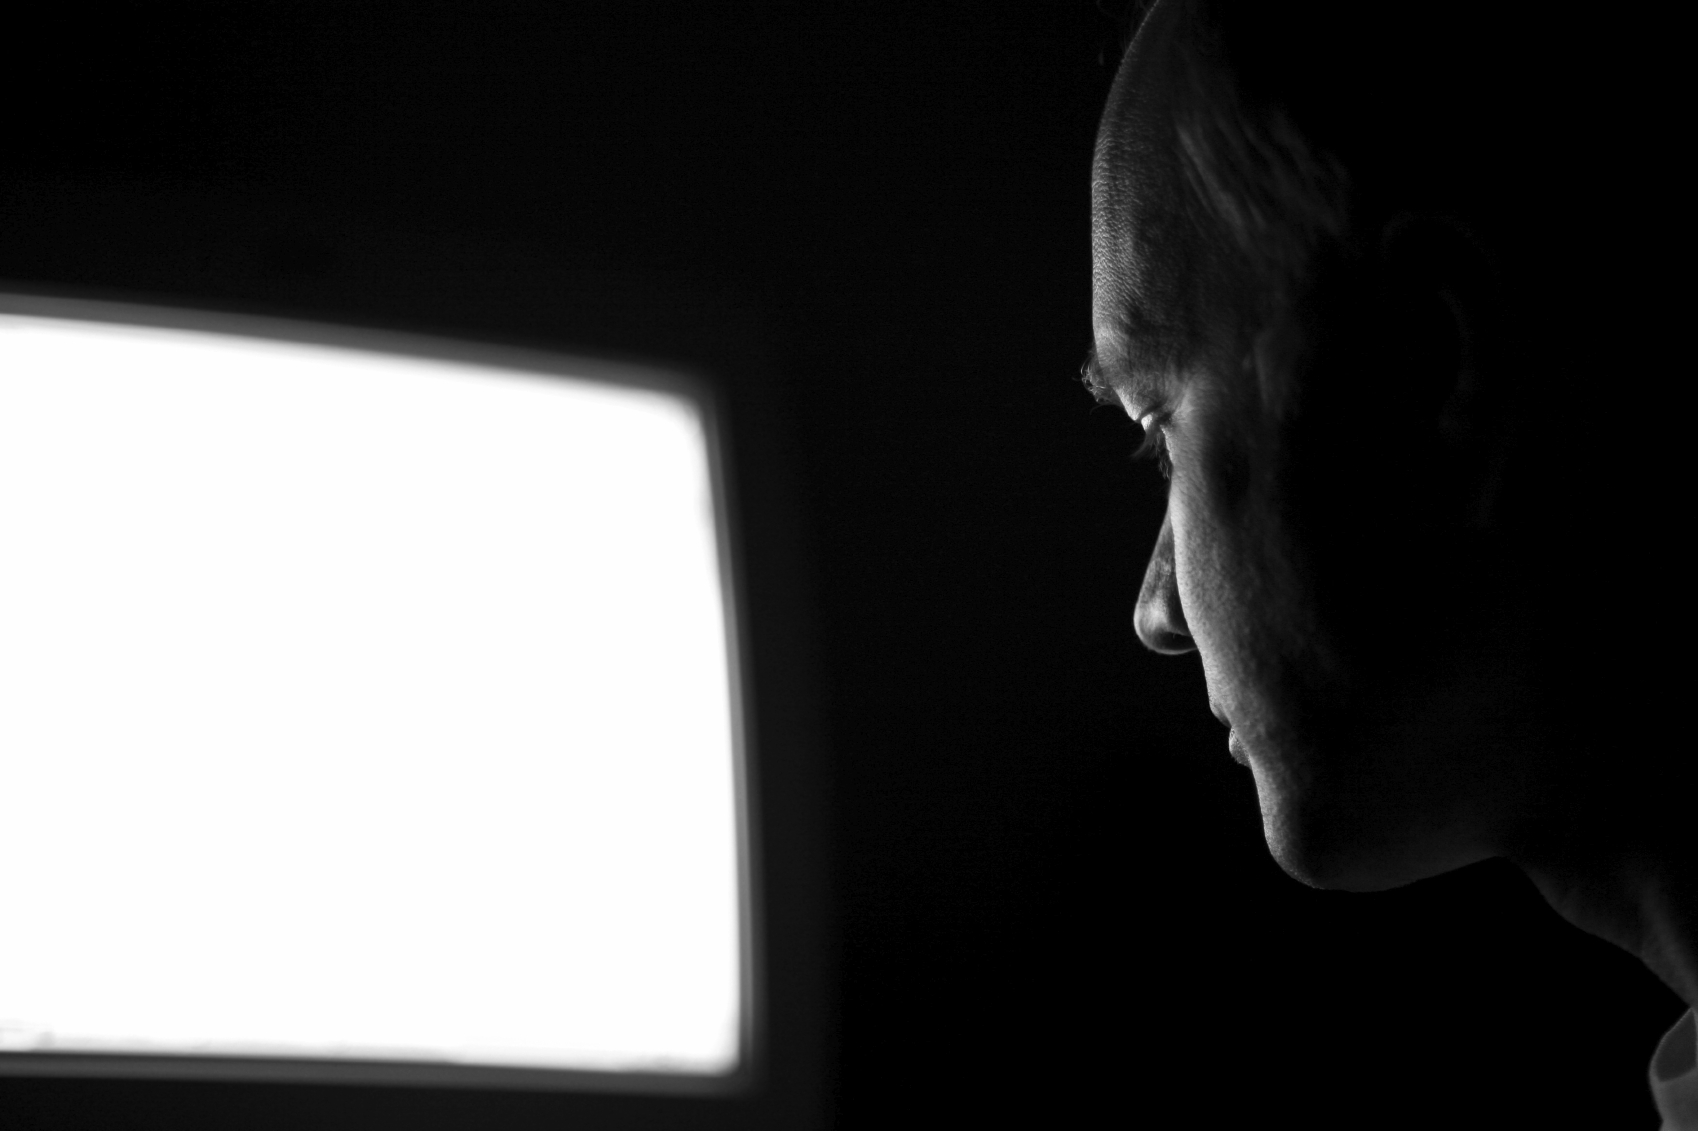 software engineer works at night, selective focus on face